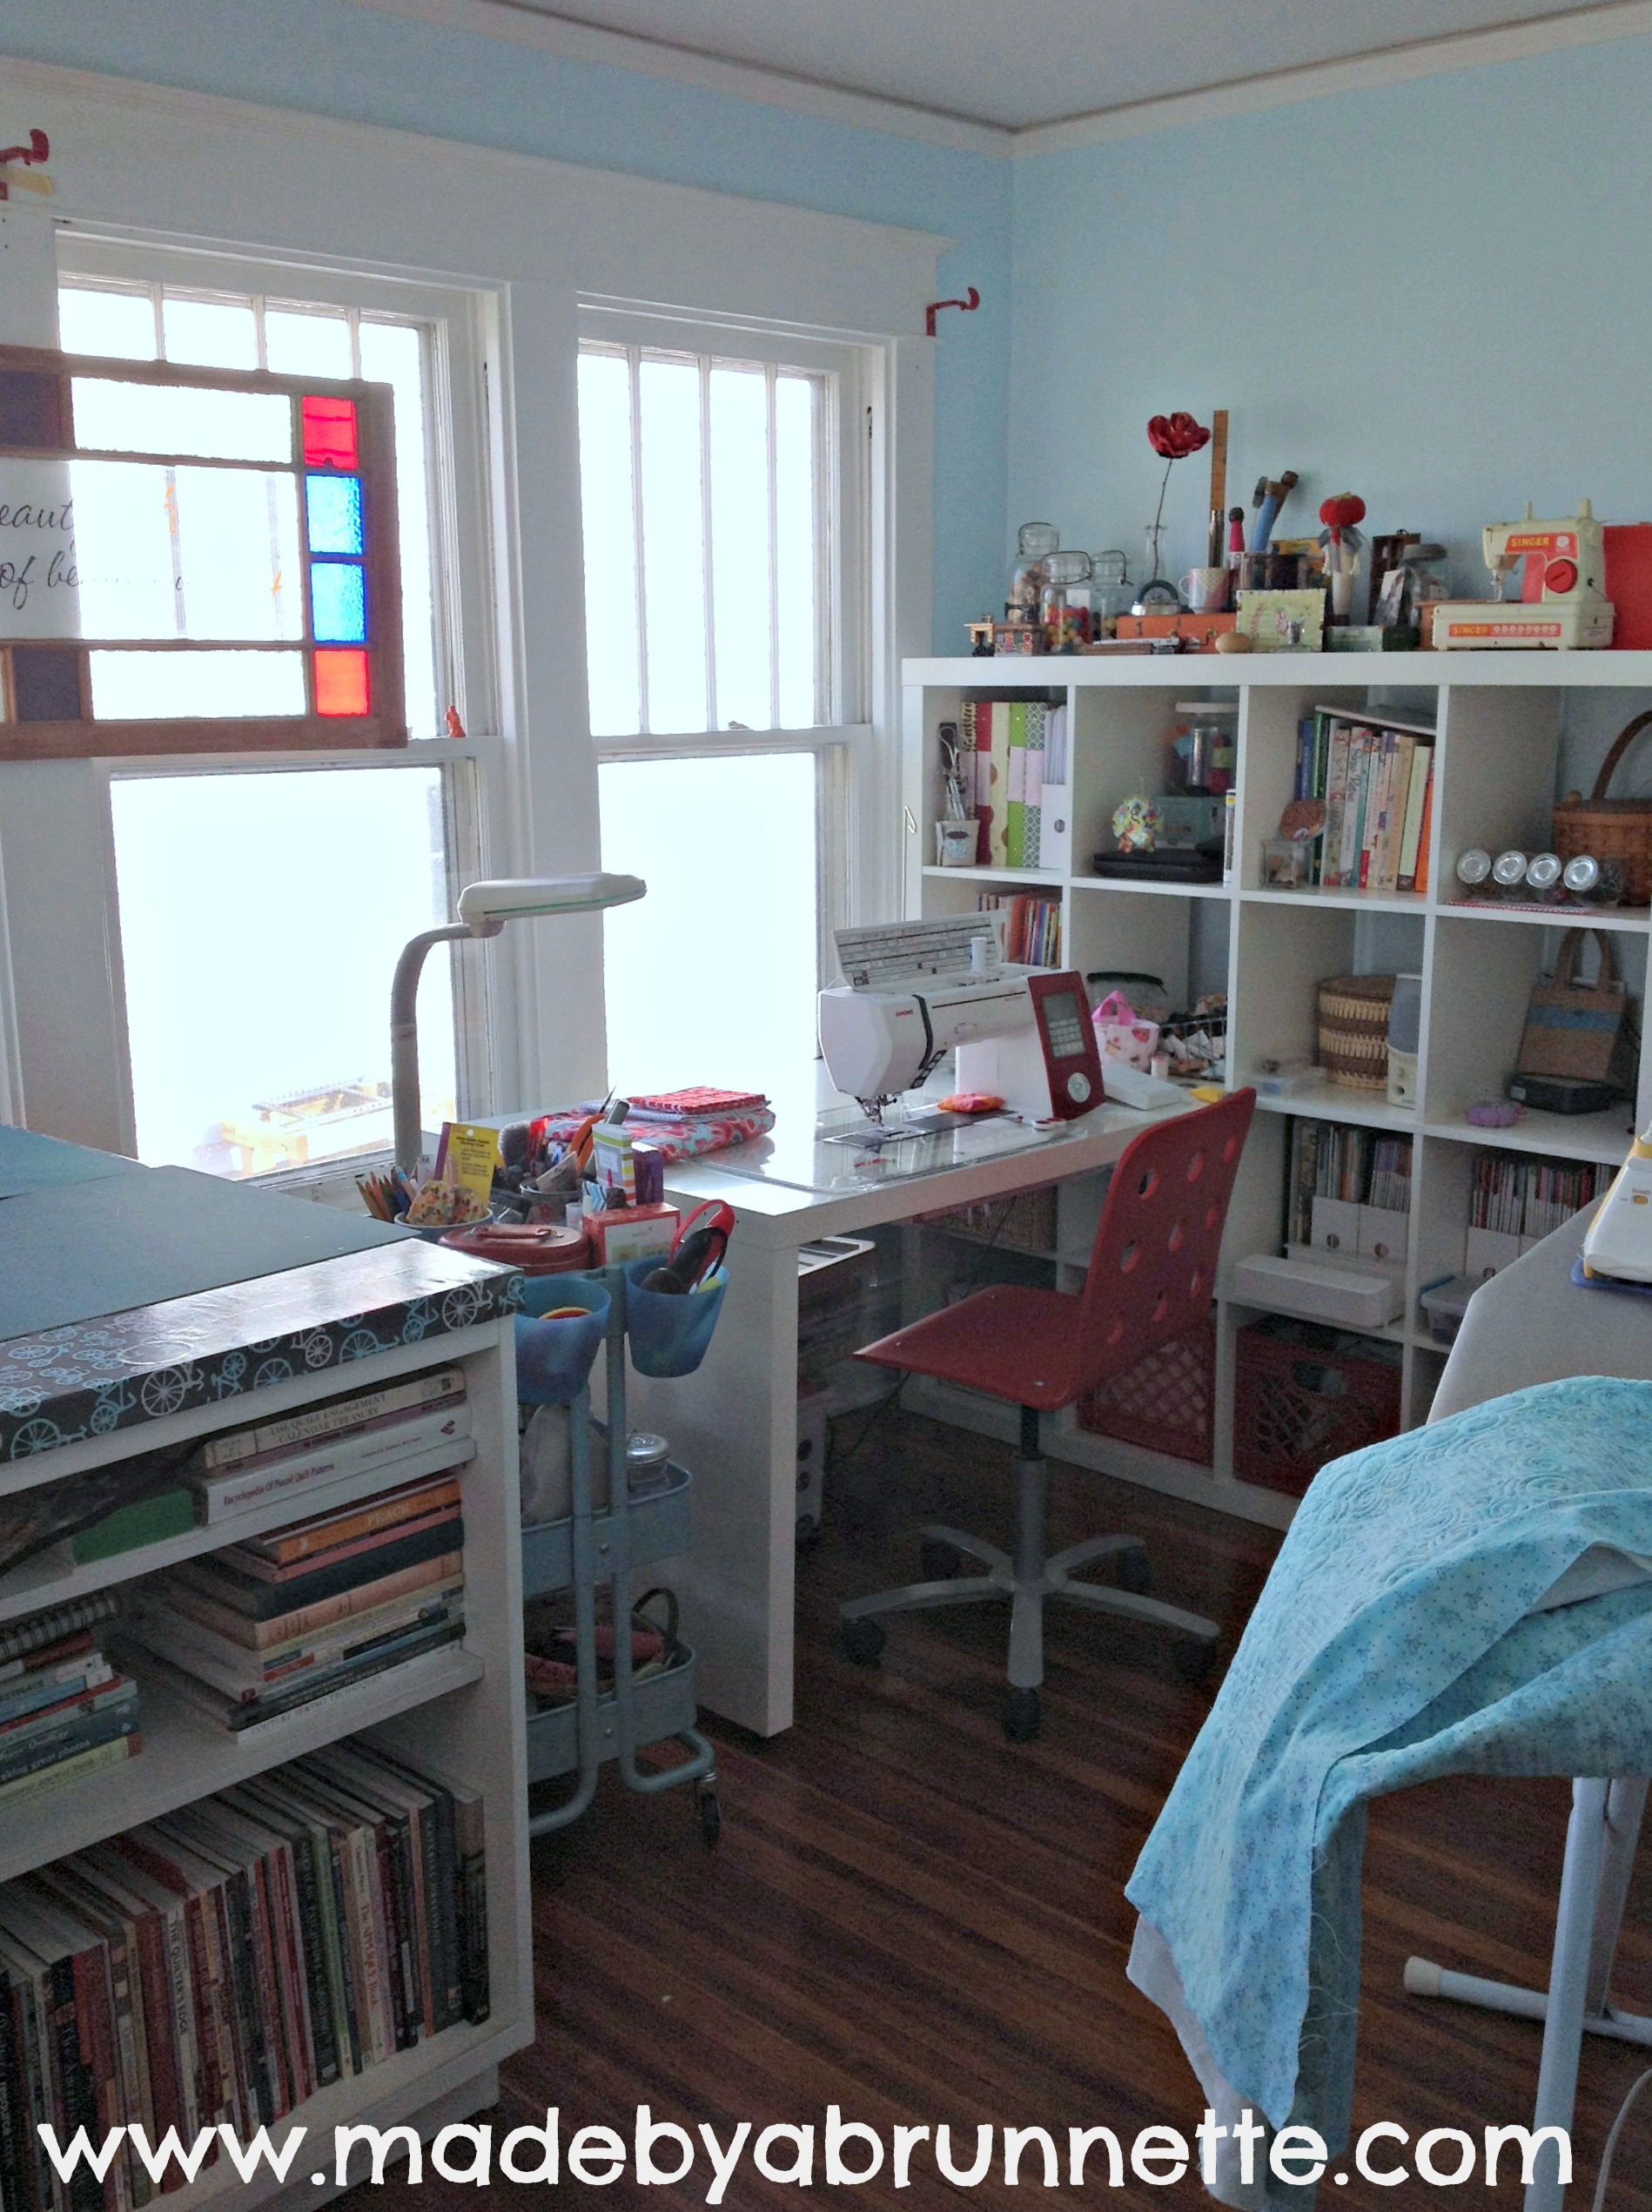 Merveilleux Quilting Sewing Studio Full Shot. Ikea Expedit Shelving Unit And Desk ...